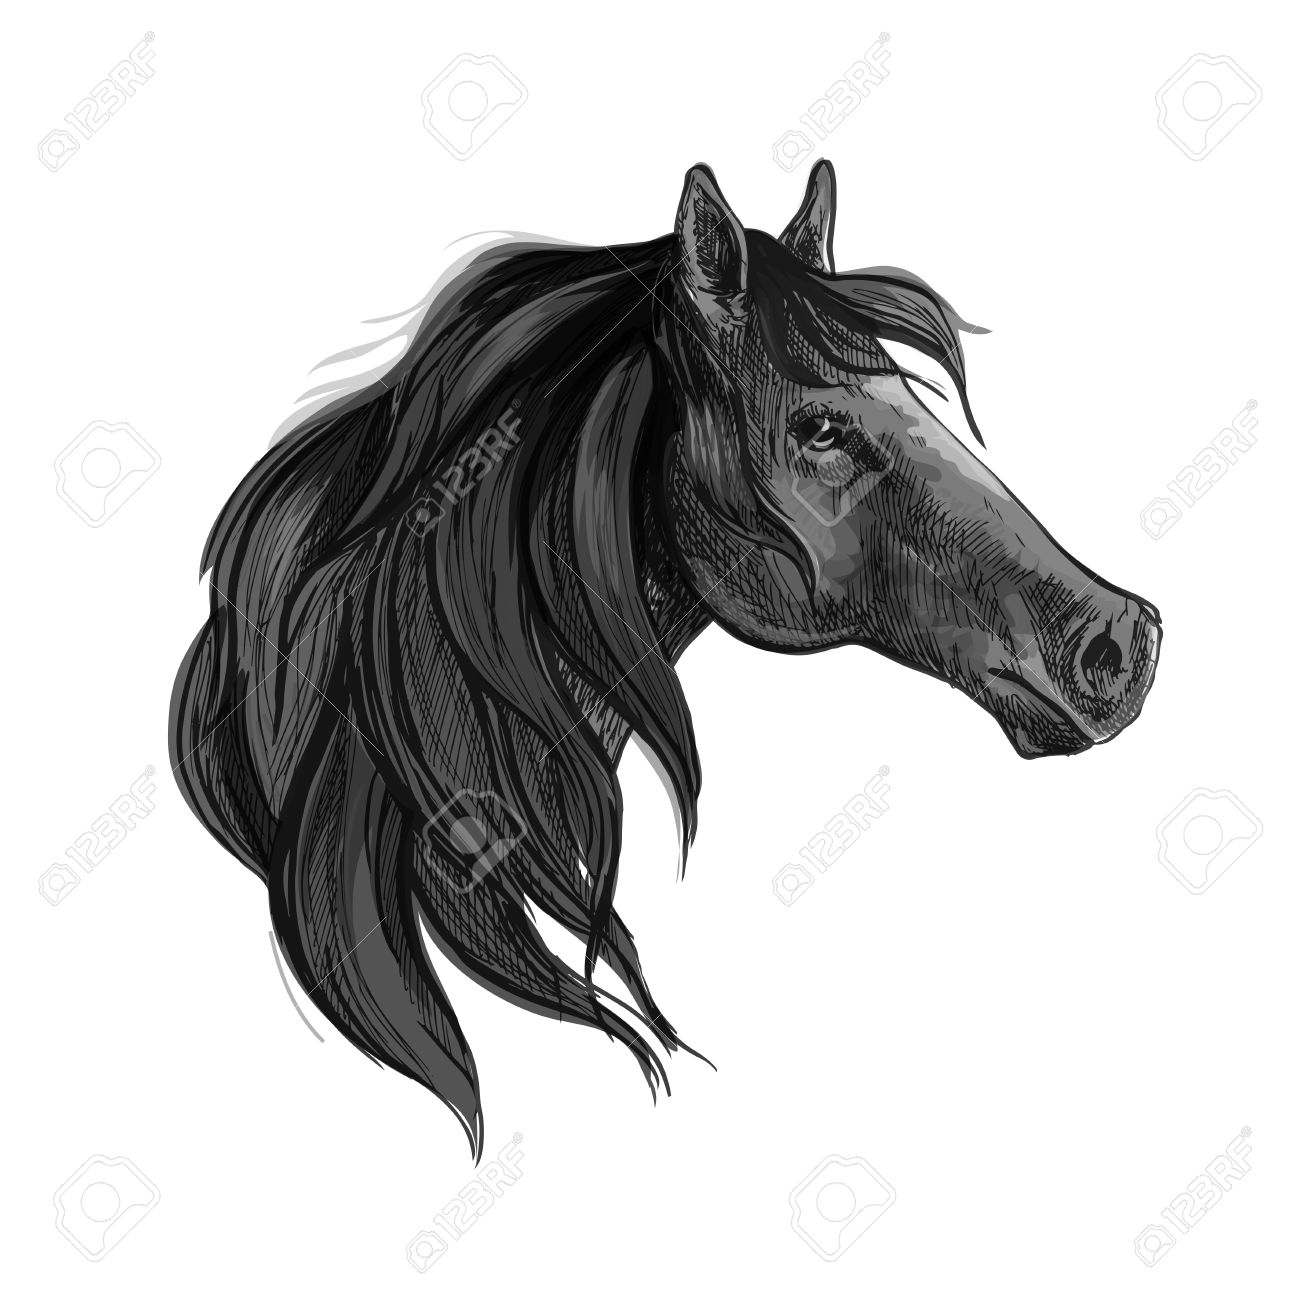 Black Horse Sketch Of Purebred Arabian Mare With Silky Mane Royalty Free Cliparts Vectors And Stock Illustration Image 61439787